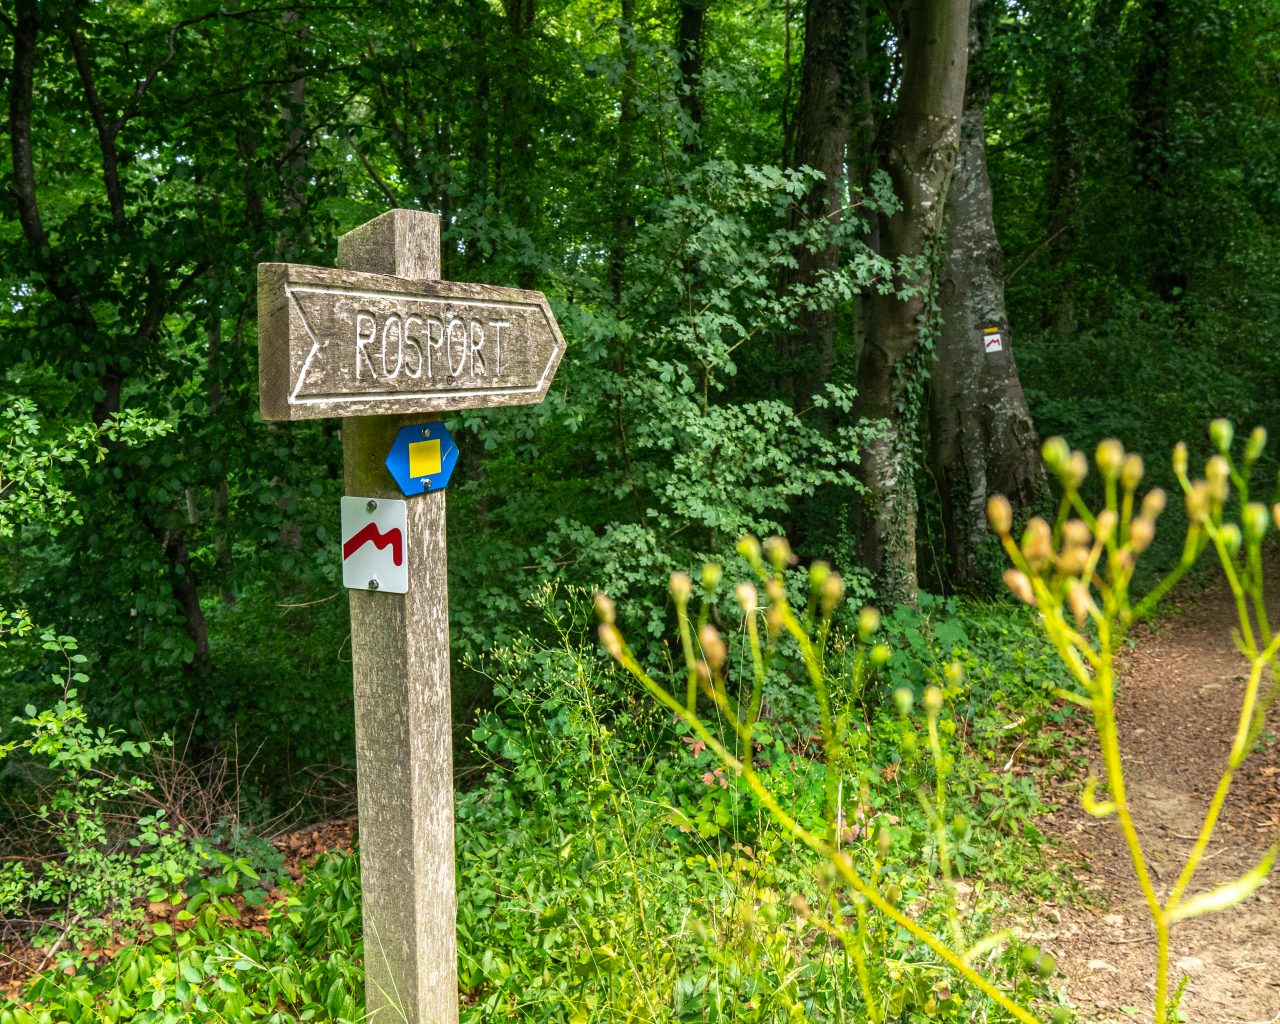 Mullerthal-trail-1-bord-met-markering